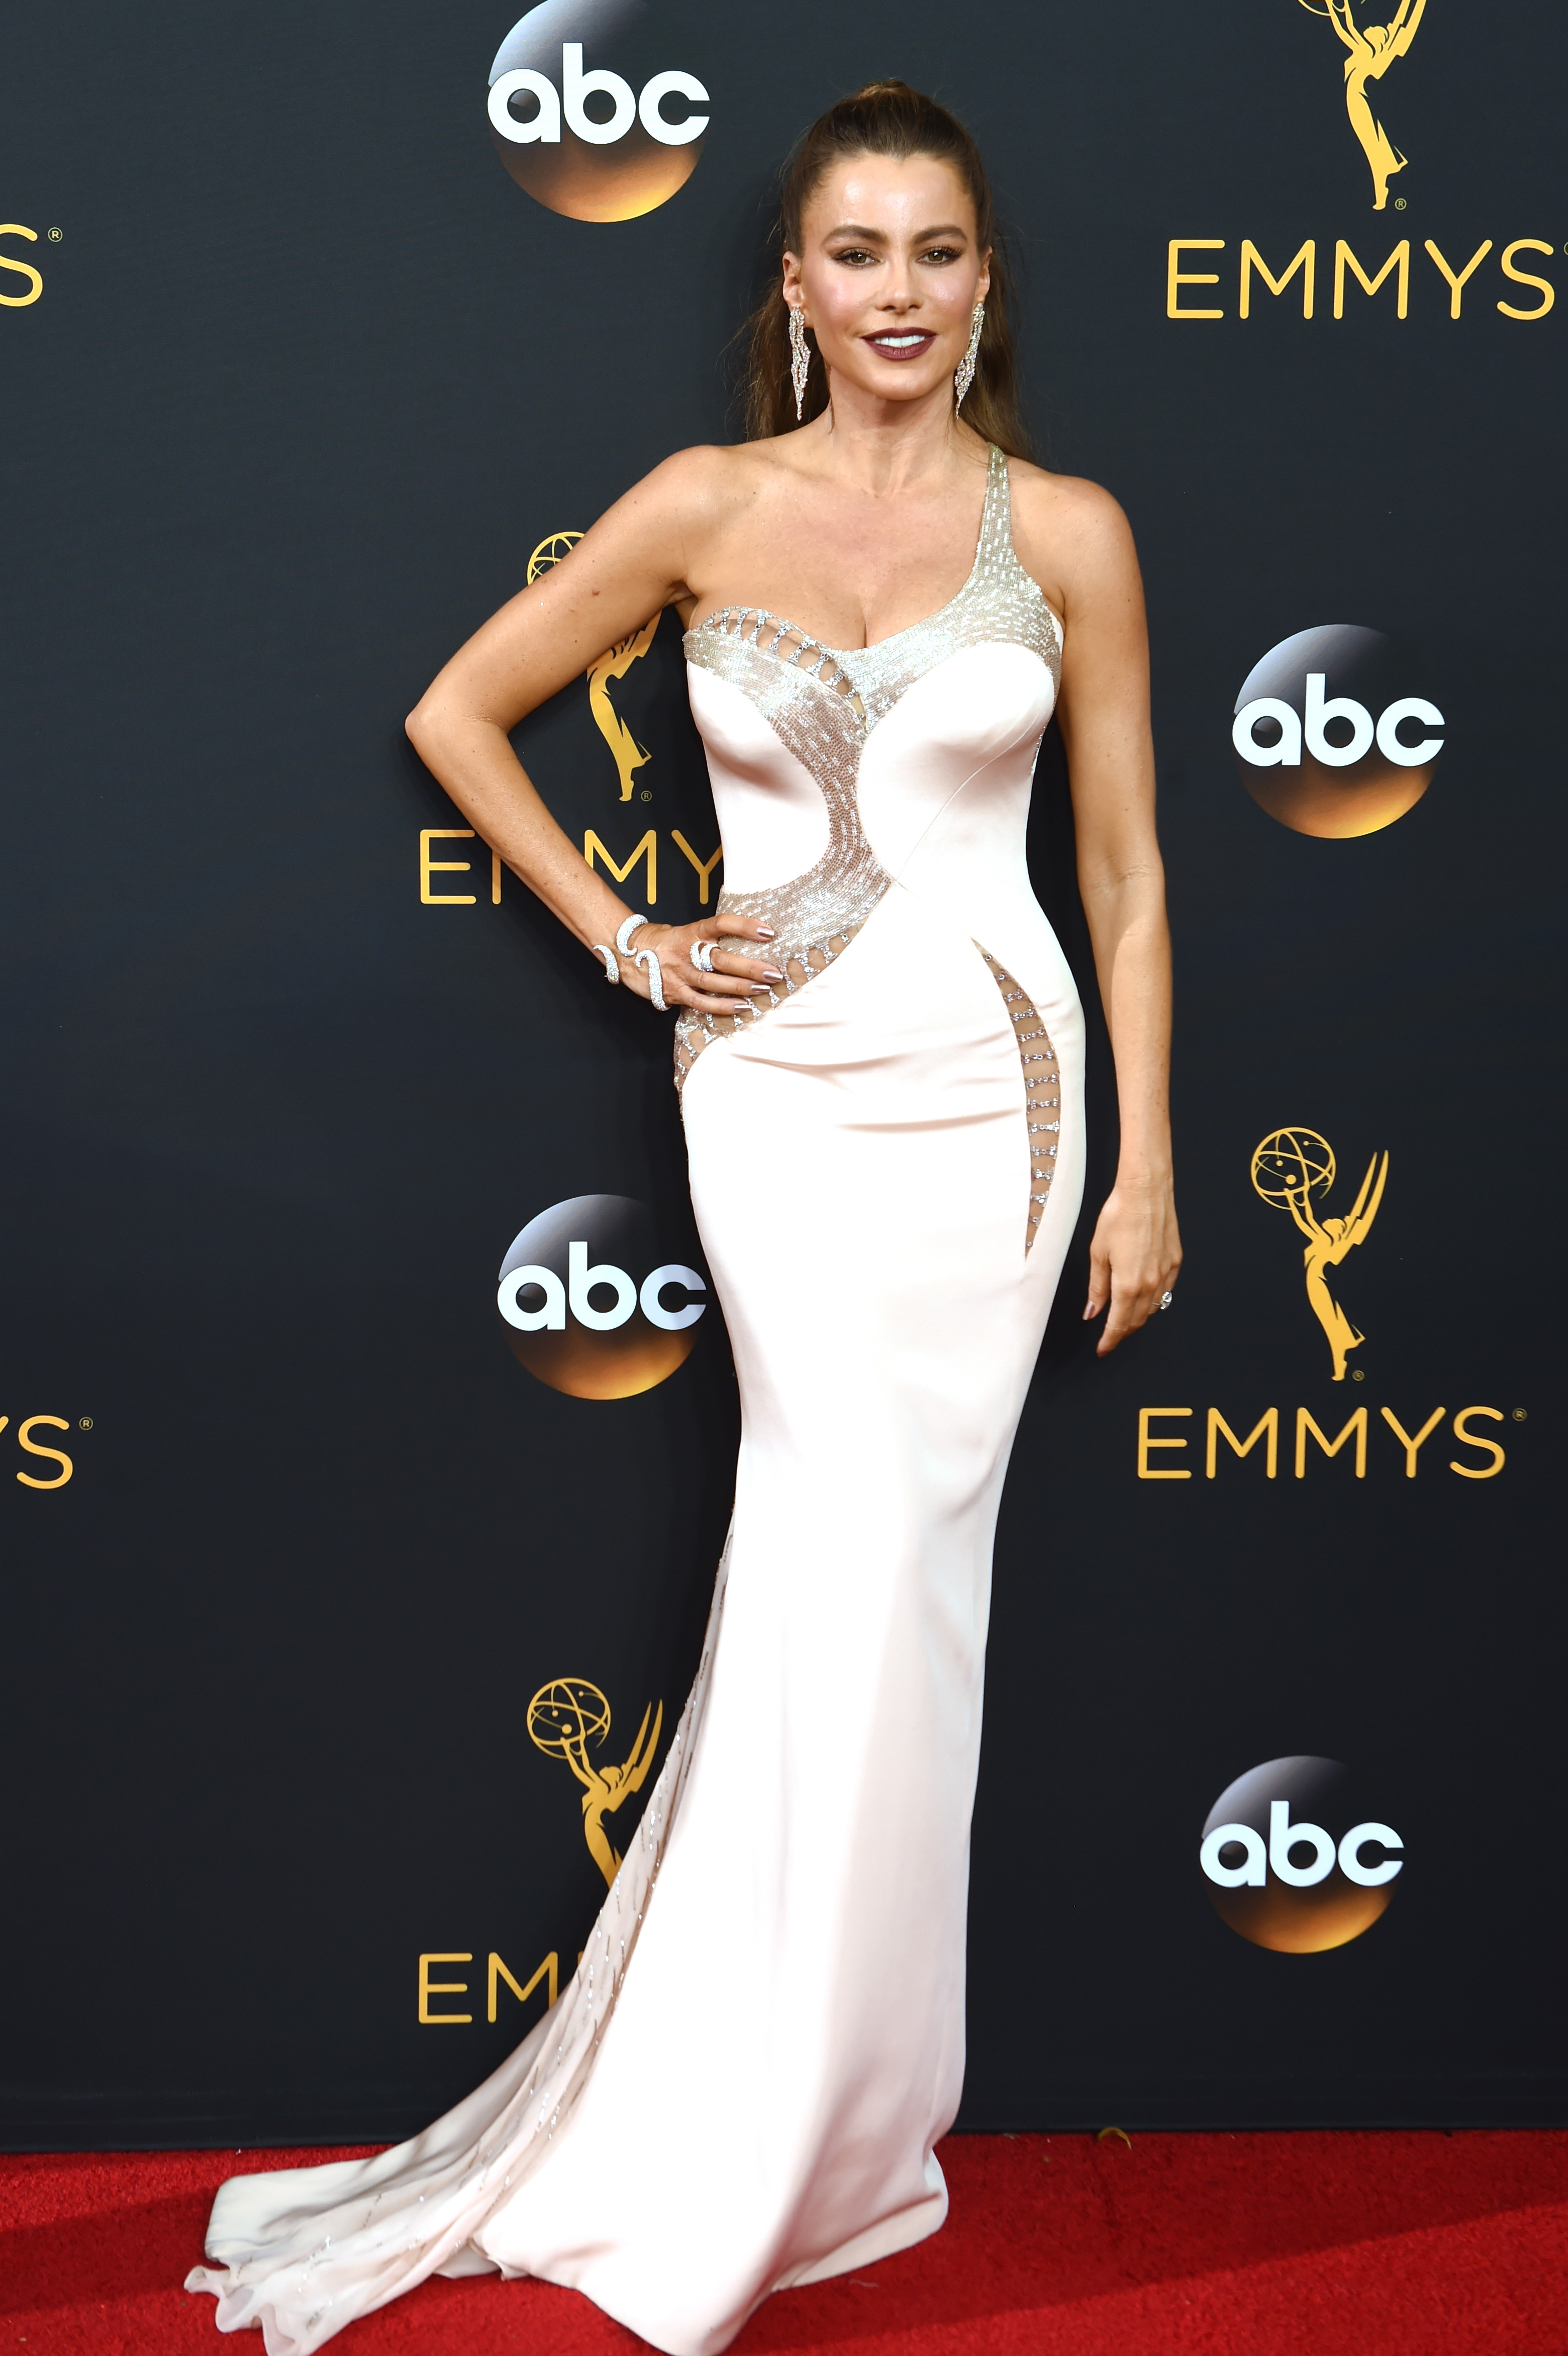 Sofia Vergara arrives at the 68th Annual Primetime Emmy Awards at Microsoft Theater on Sept. 18, 2016 in Los Angeles.